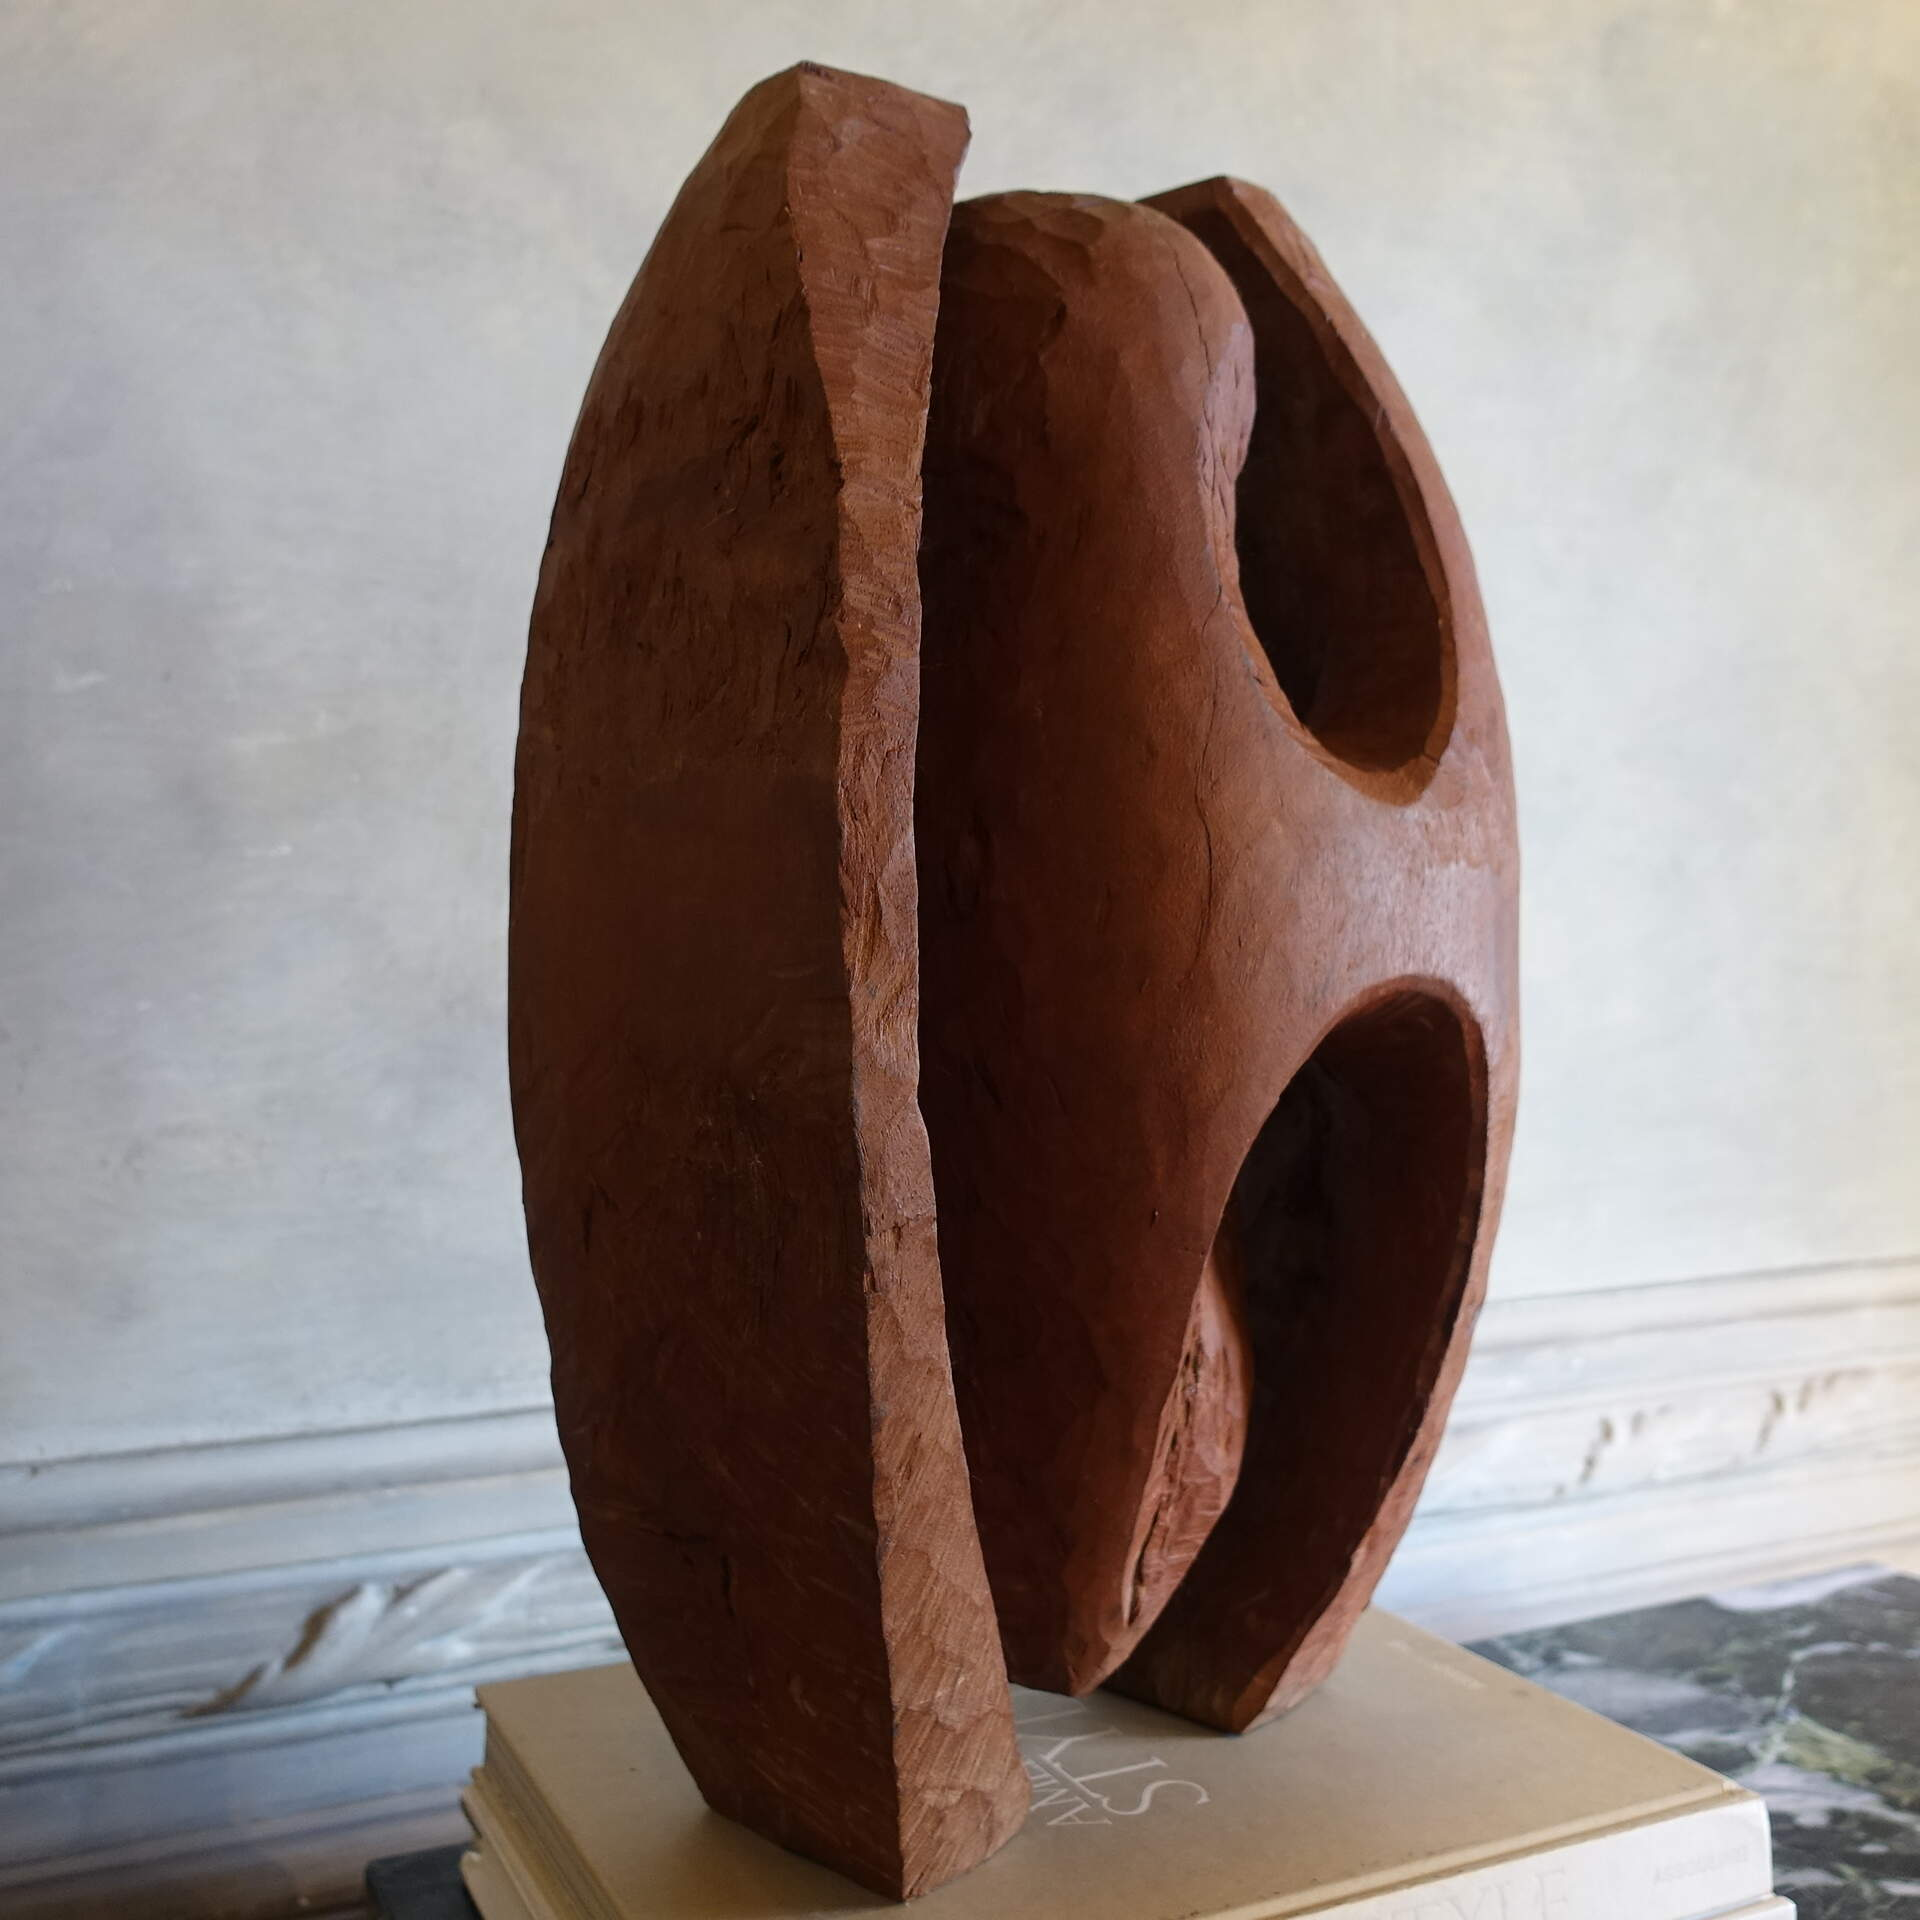 1960s Wood Sculpture by Dragoljub Milosevic